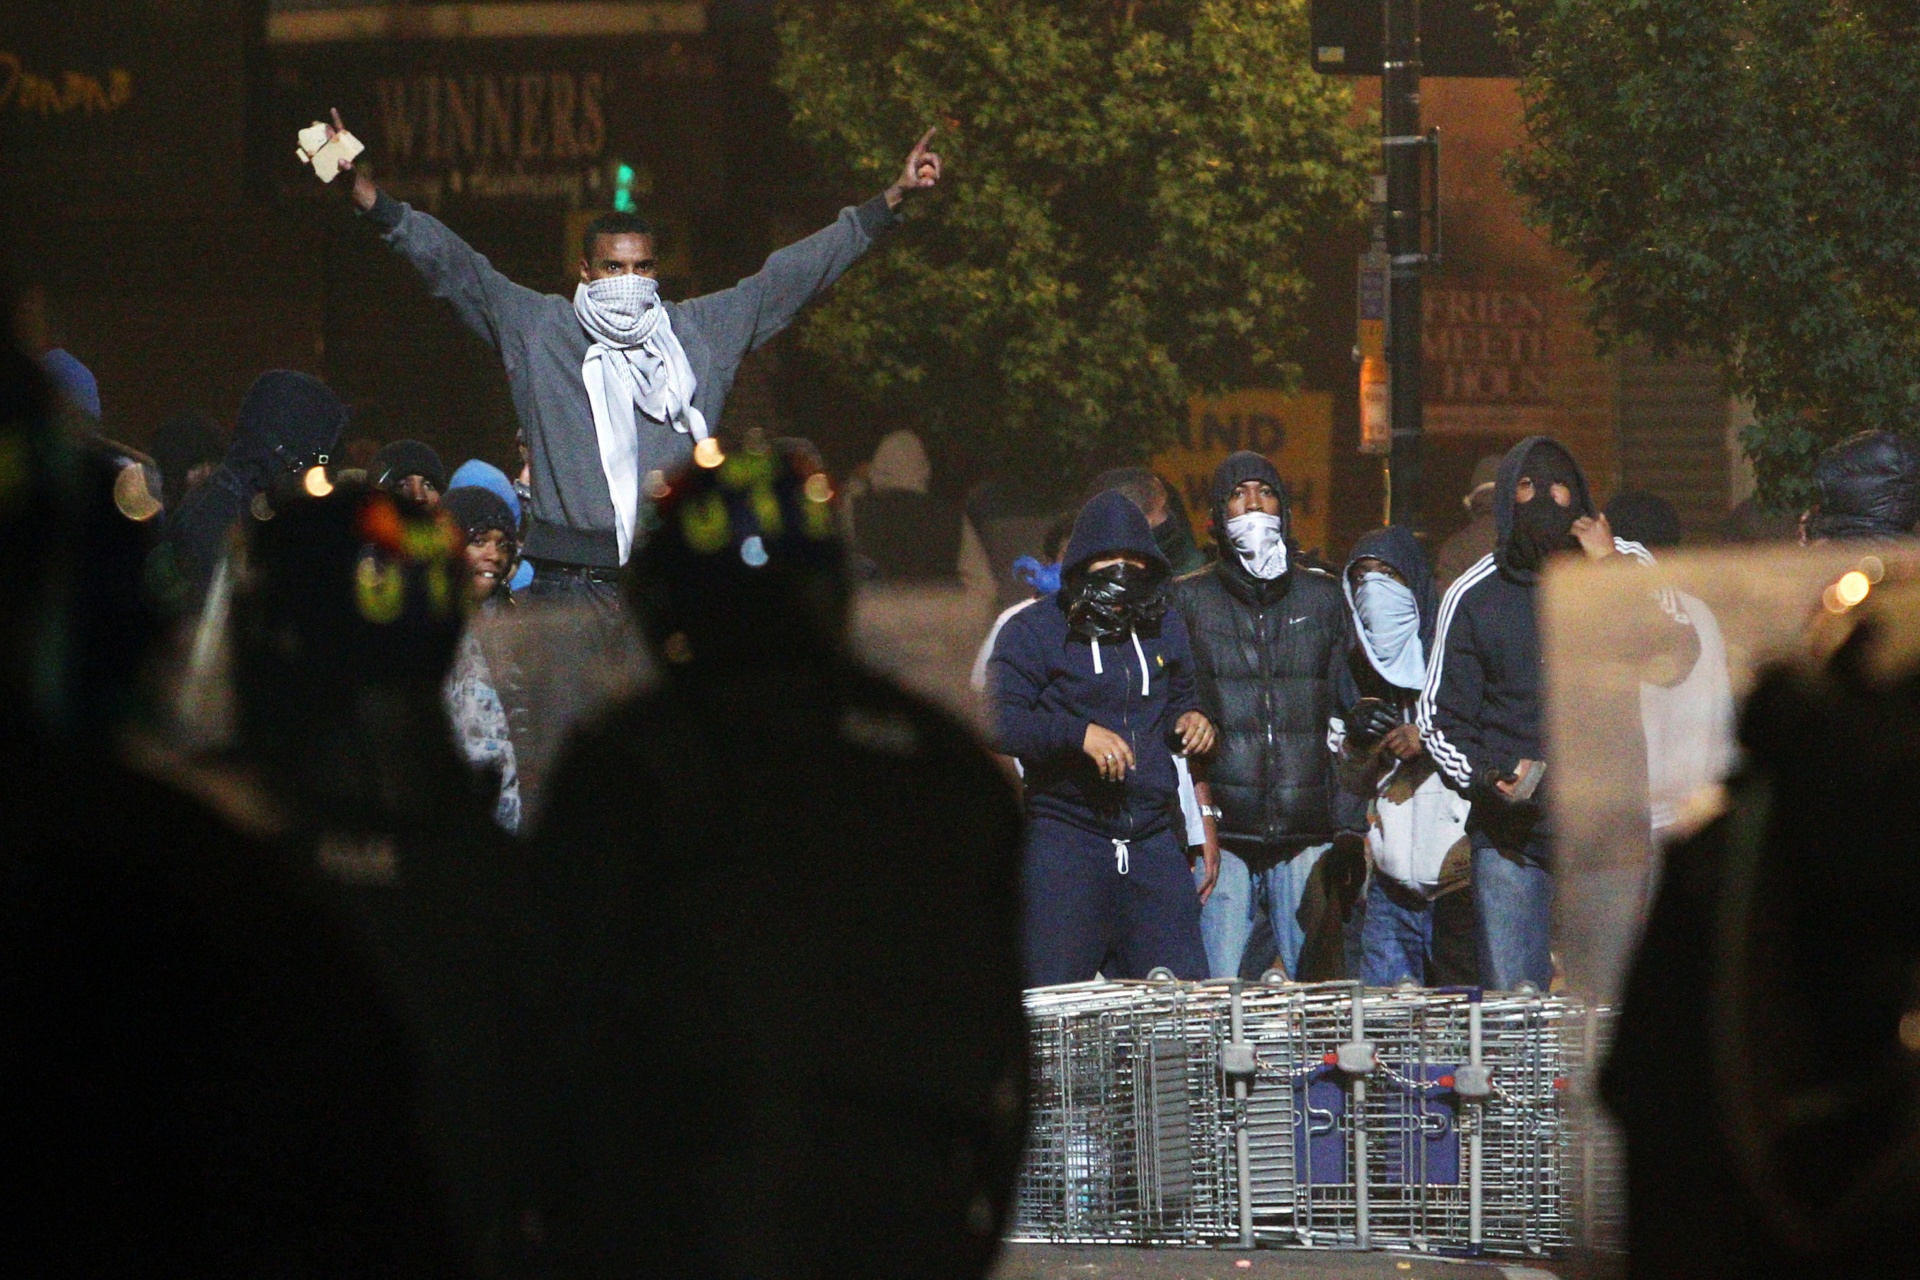 Trouble flares in Tottenham, north London, as members of the community take to the streets to demand justice after Mark Duggan, 29, was shot dead by police, August 2011